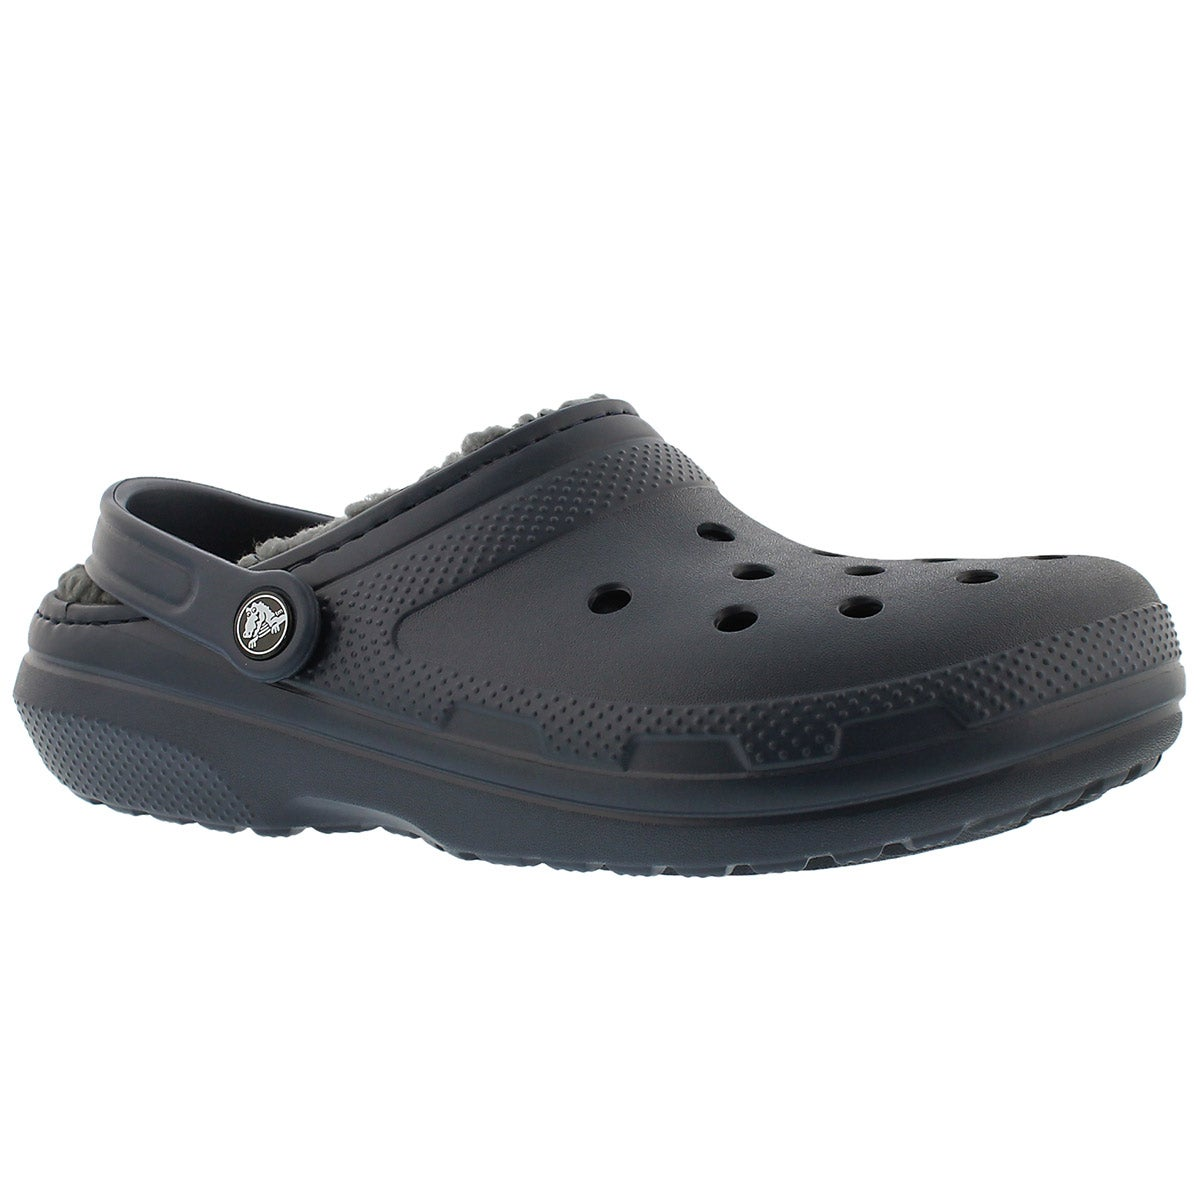 Men's CLASSIC LINED navy comfort clogs